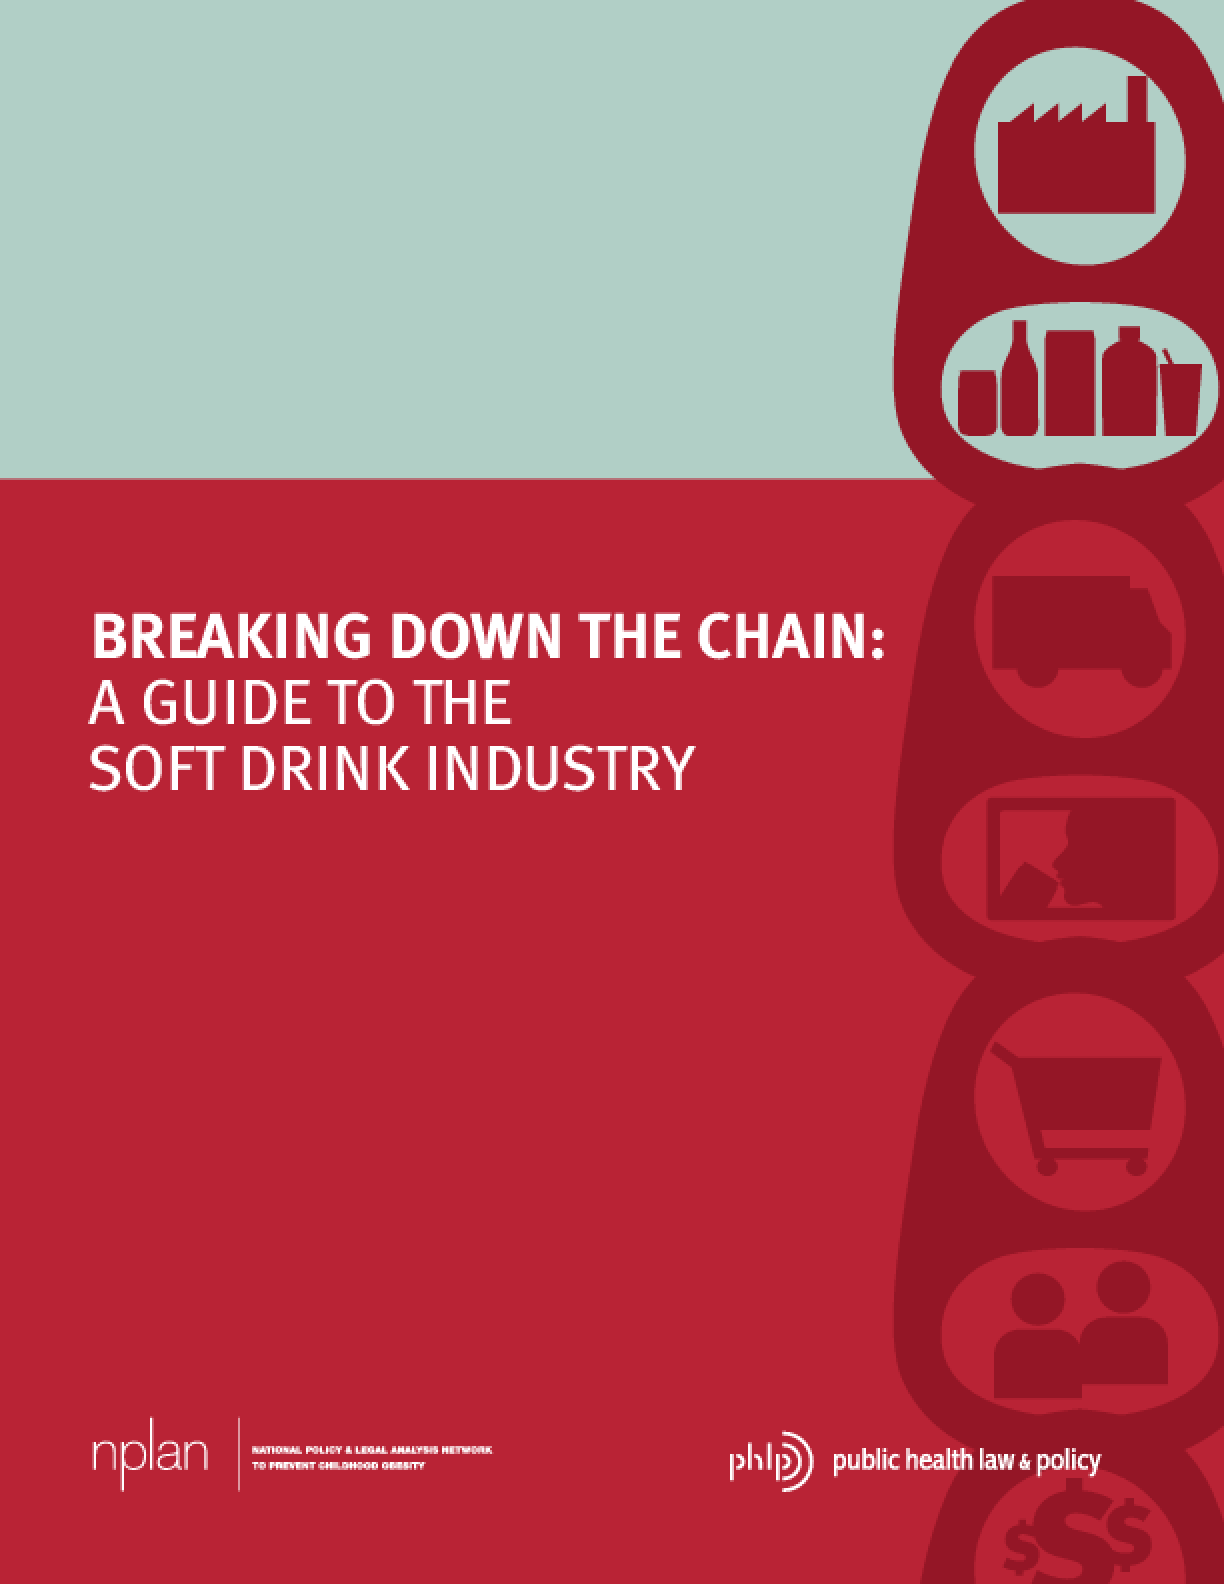 Breaking Down the Chain: A Guide to the Soft Drink Industry